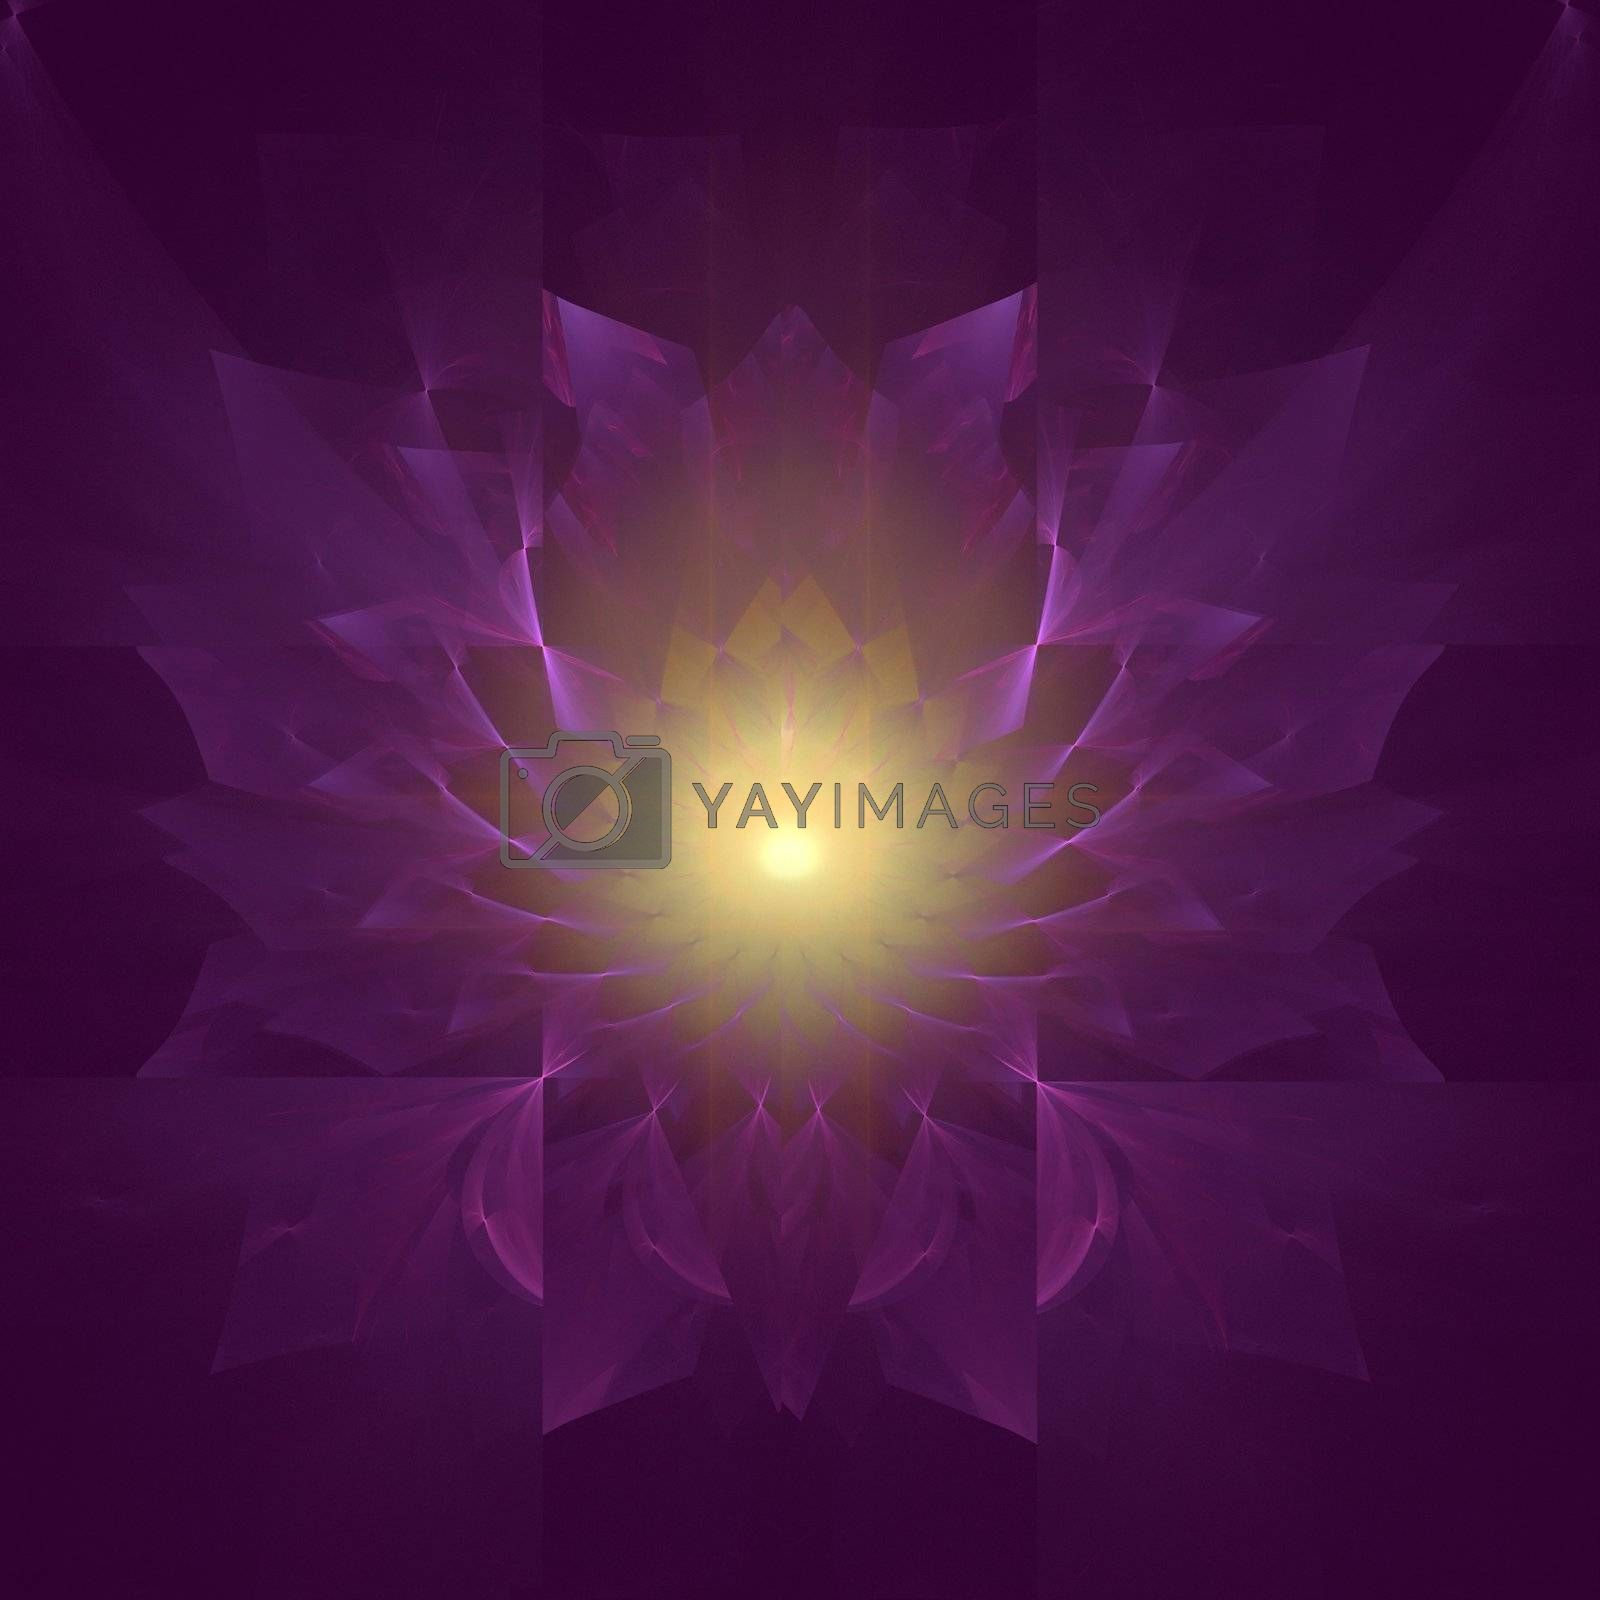 Abstract fractal design representing the mum flower with emphasis on the color purple.